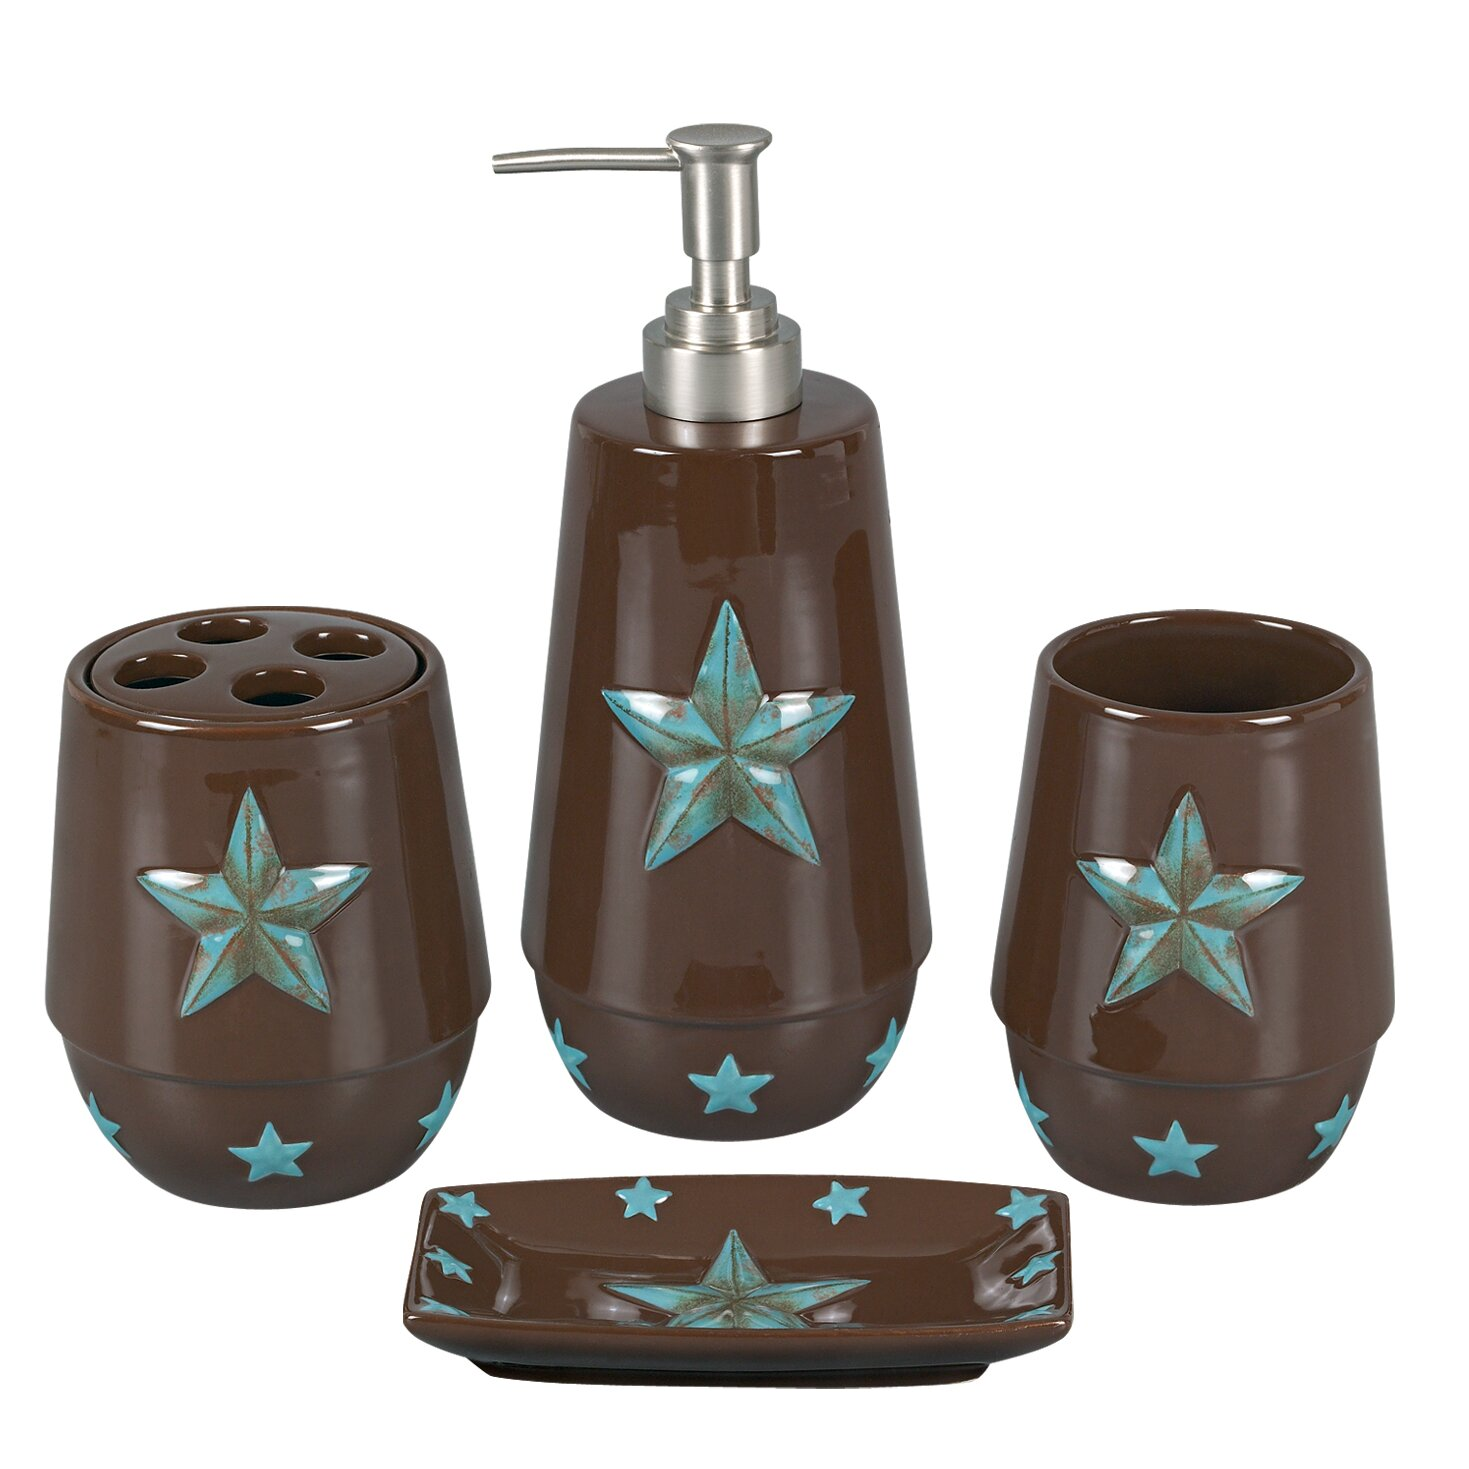 Hiend accents star 4 piece bathroom accessory set for 4 piece bathroom ideas